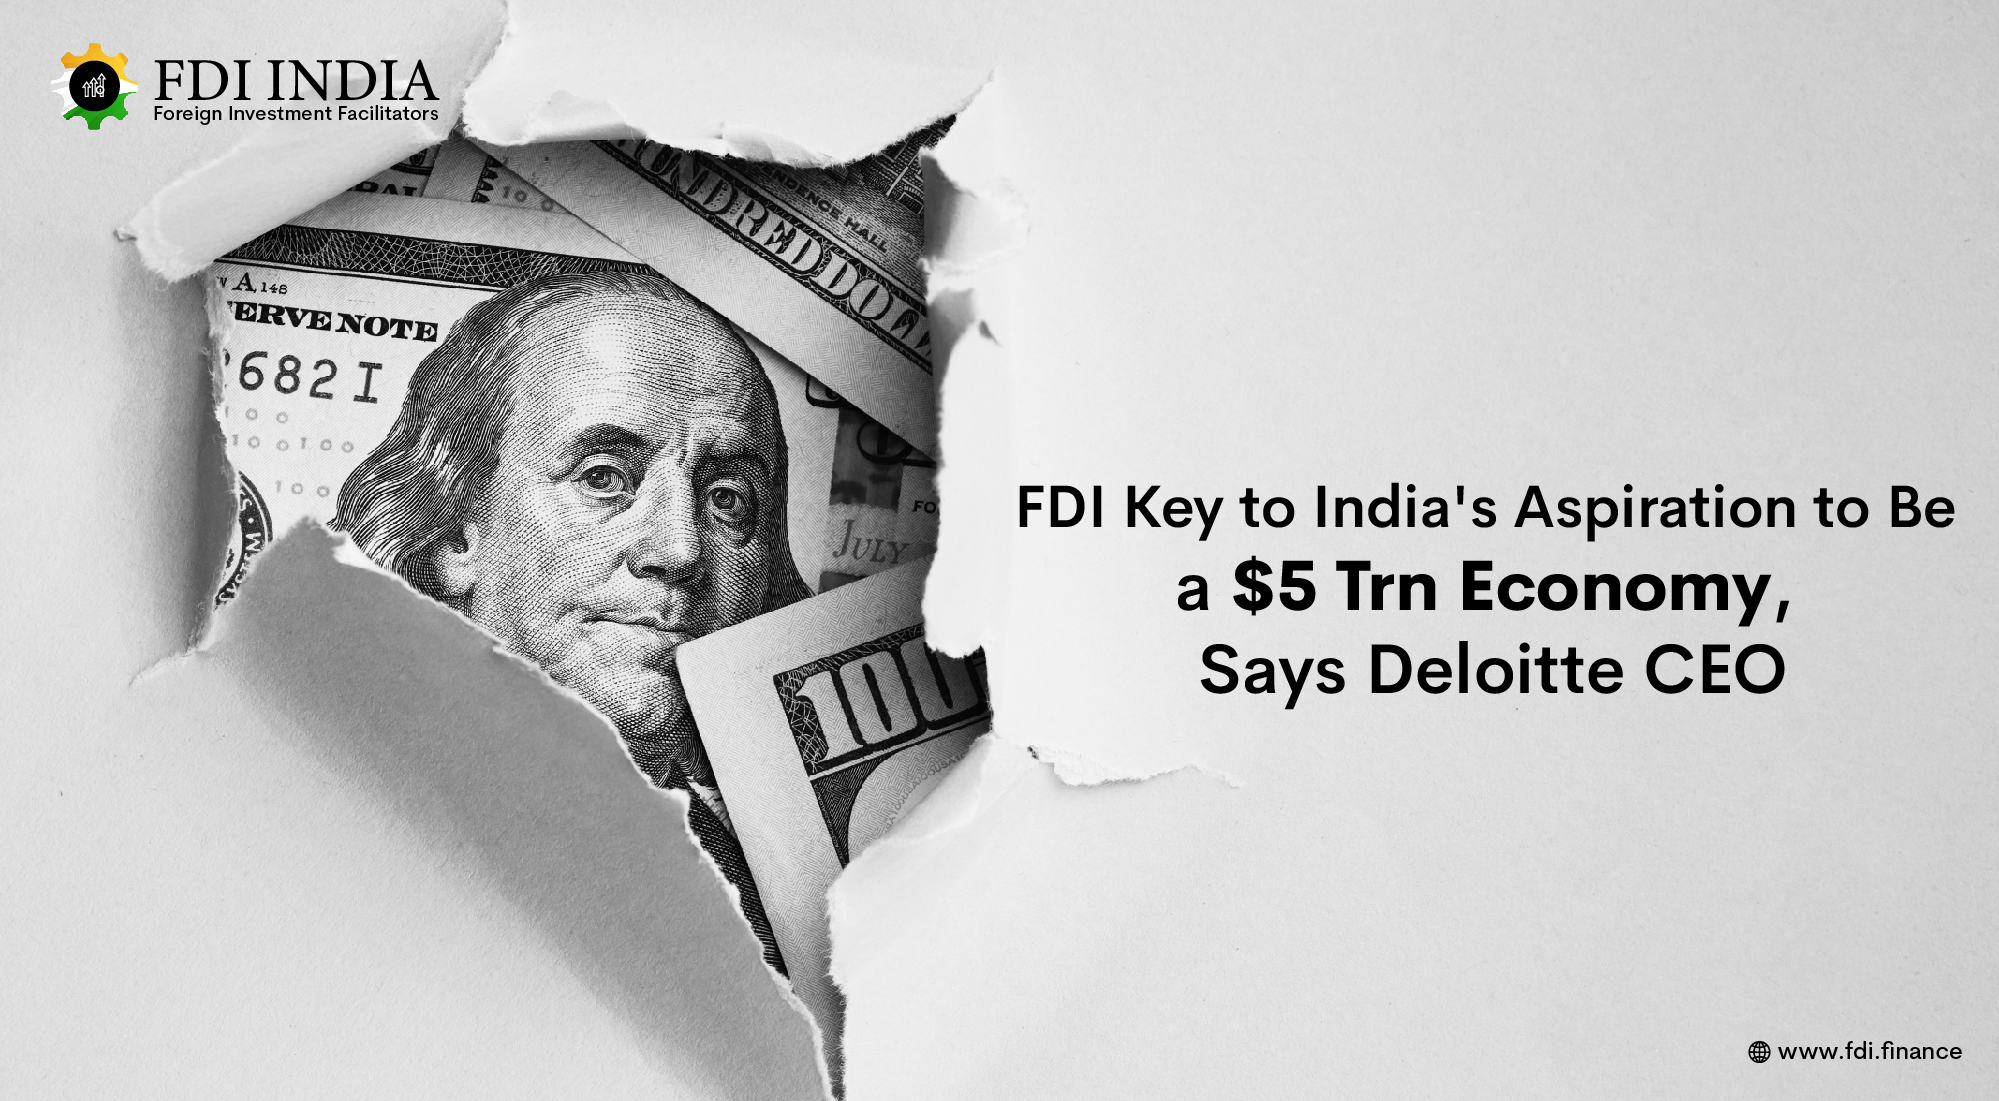 FDI Key to India's Aspiration to Be a $5 Trn Economy, Says Deloitte CEO